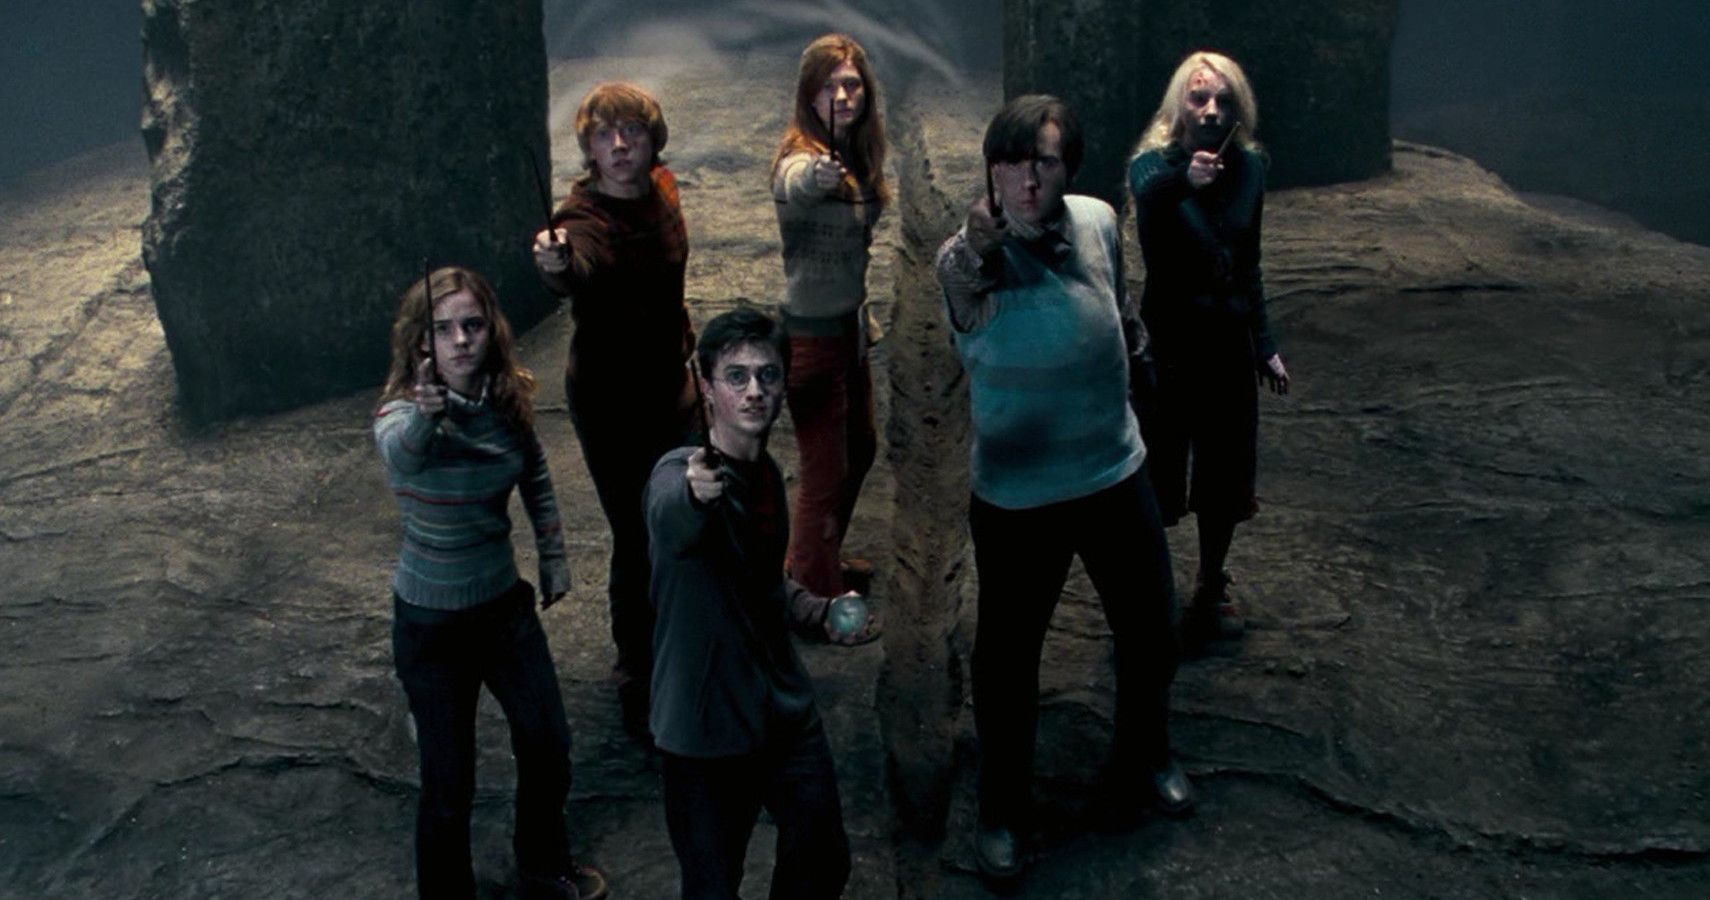 Harry Potter: 10 Fanfiction Headcanons That Became Widely